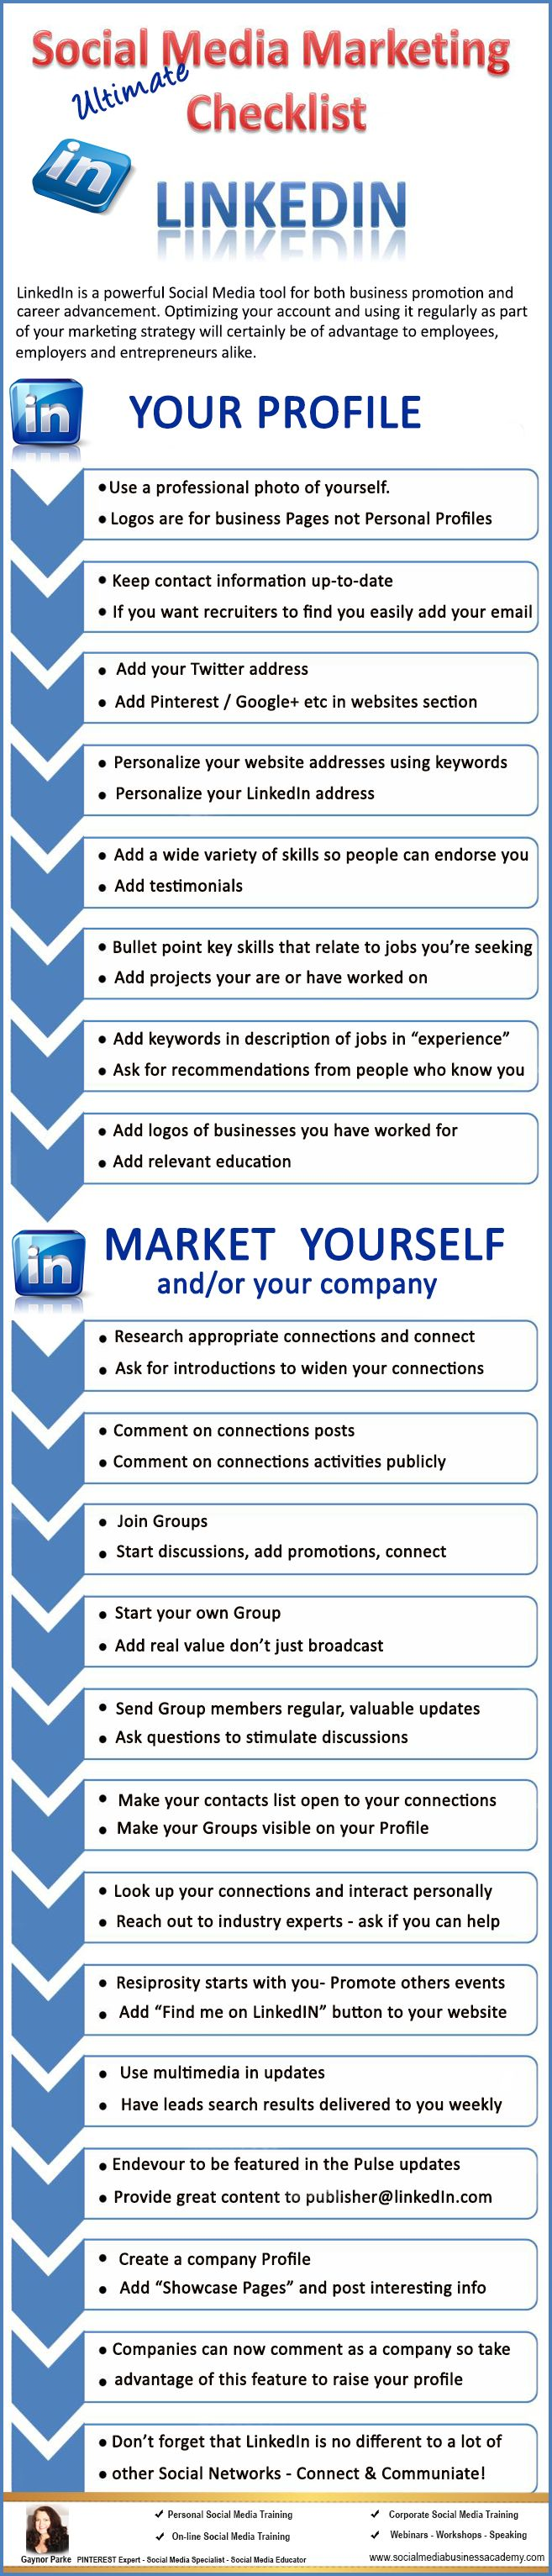 Your ultimate LinkedIn checklist. For more Social Media tips and resources visit www.socialmediabusinessacademy.com LinkedIn Infographic